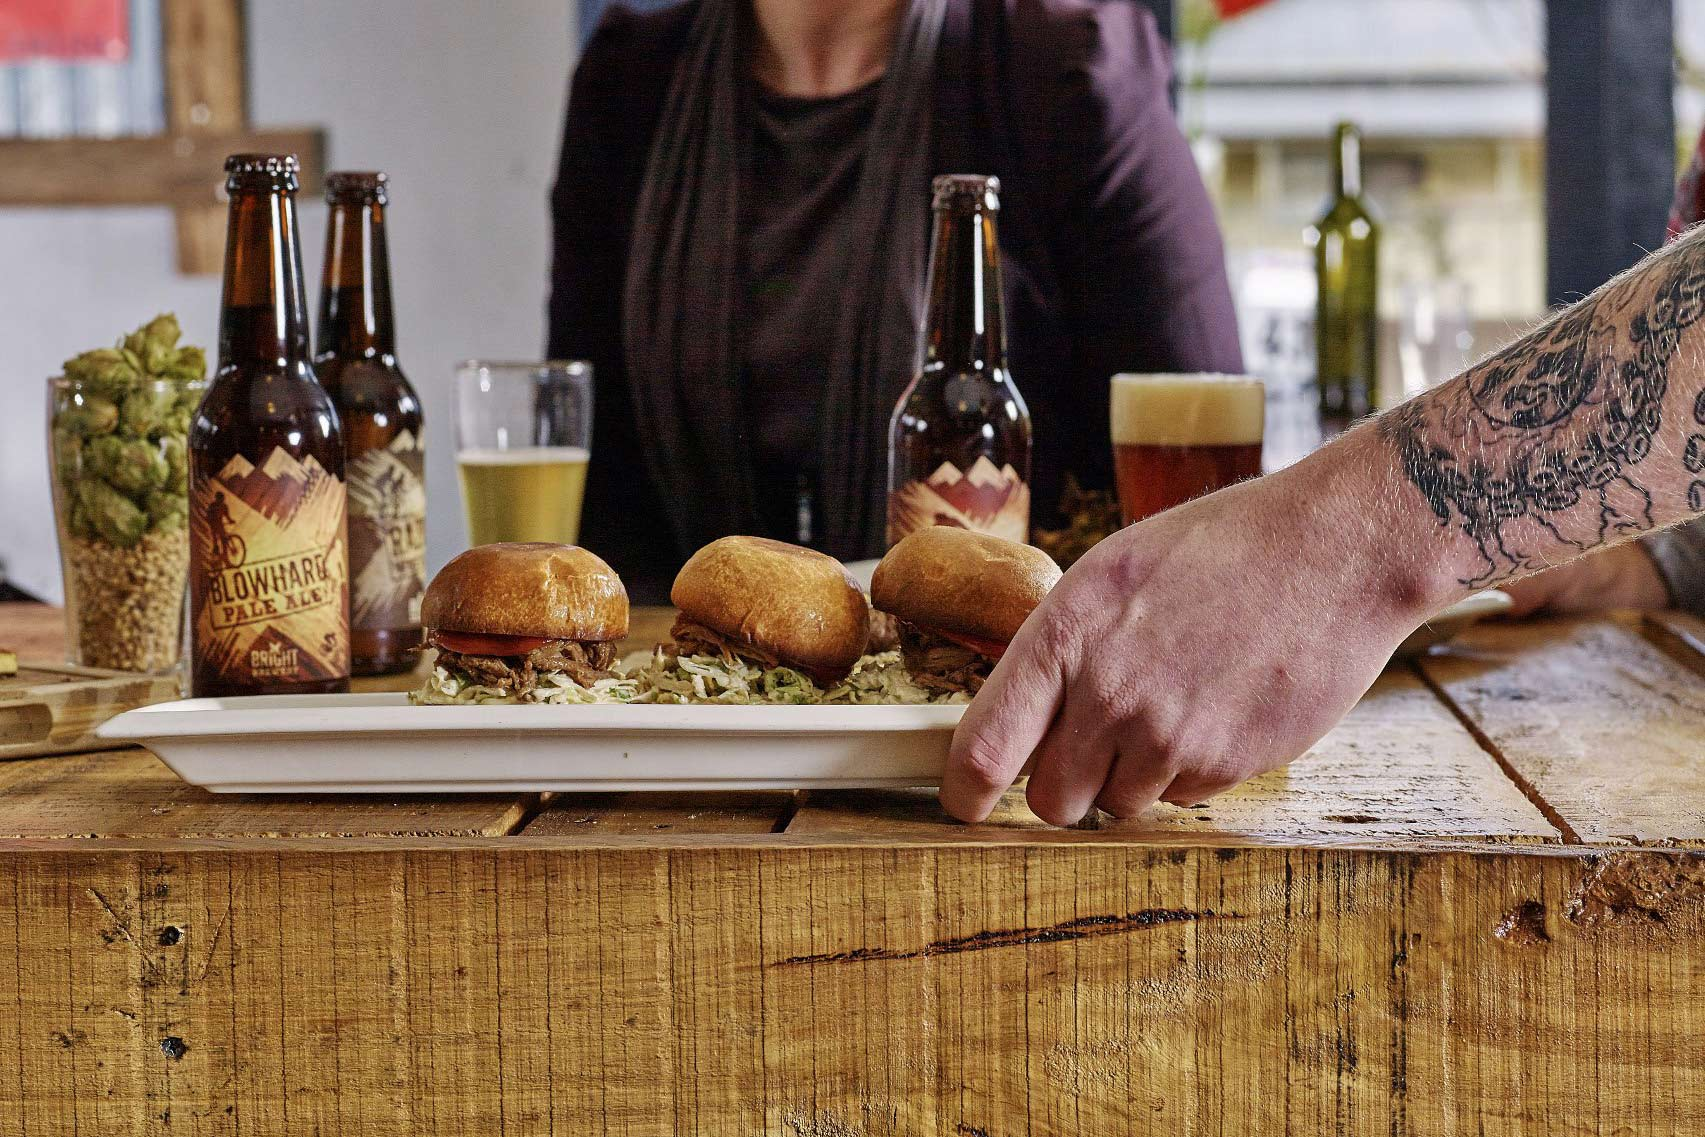 UPLOADING 1 / 1 – Bright-Brewery-Burgers-and-Beers.jpg ATTACHMENT DETAILS Bright-Brewery-Burgers-and-Beers